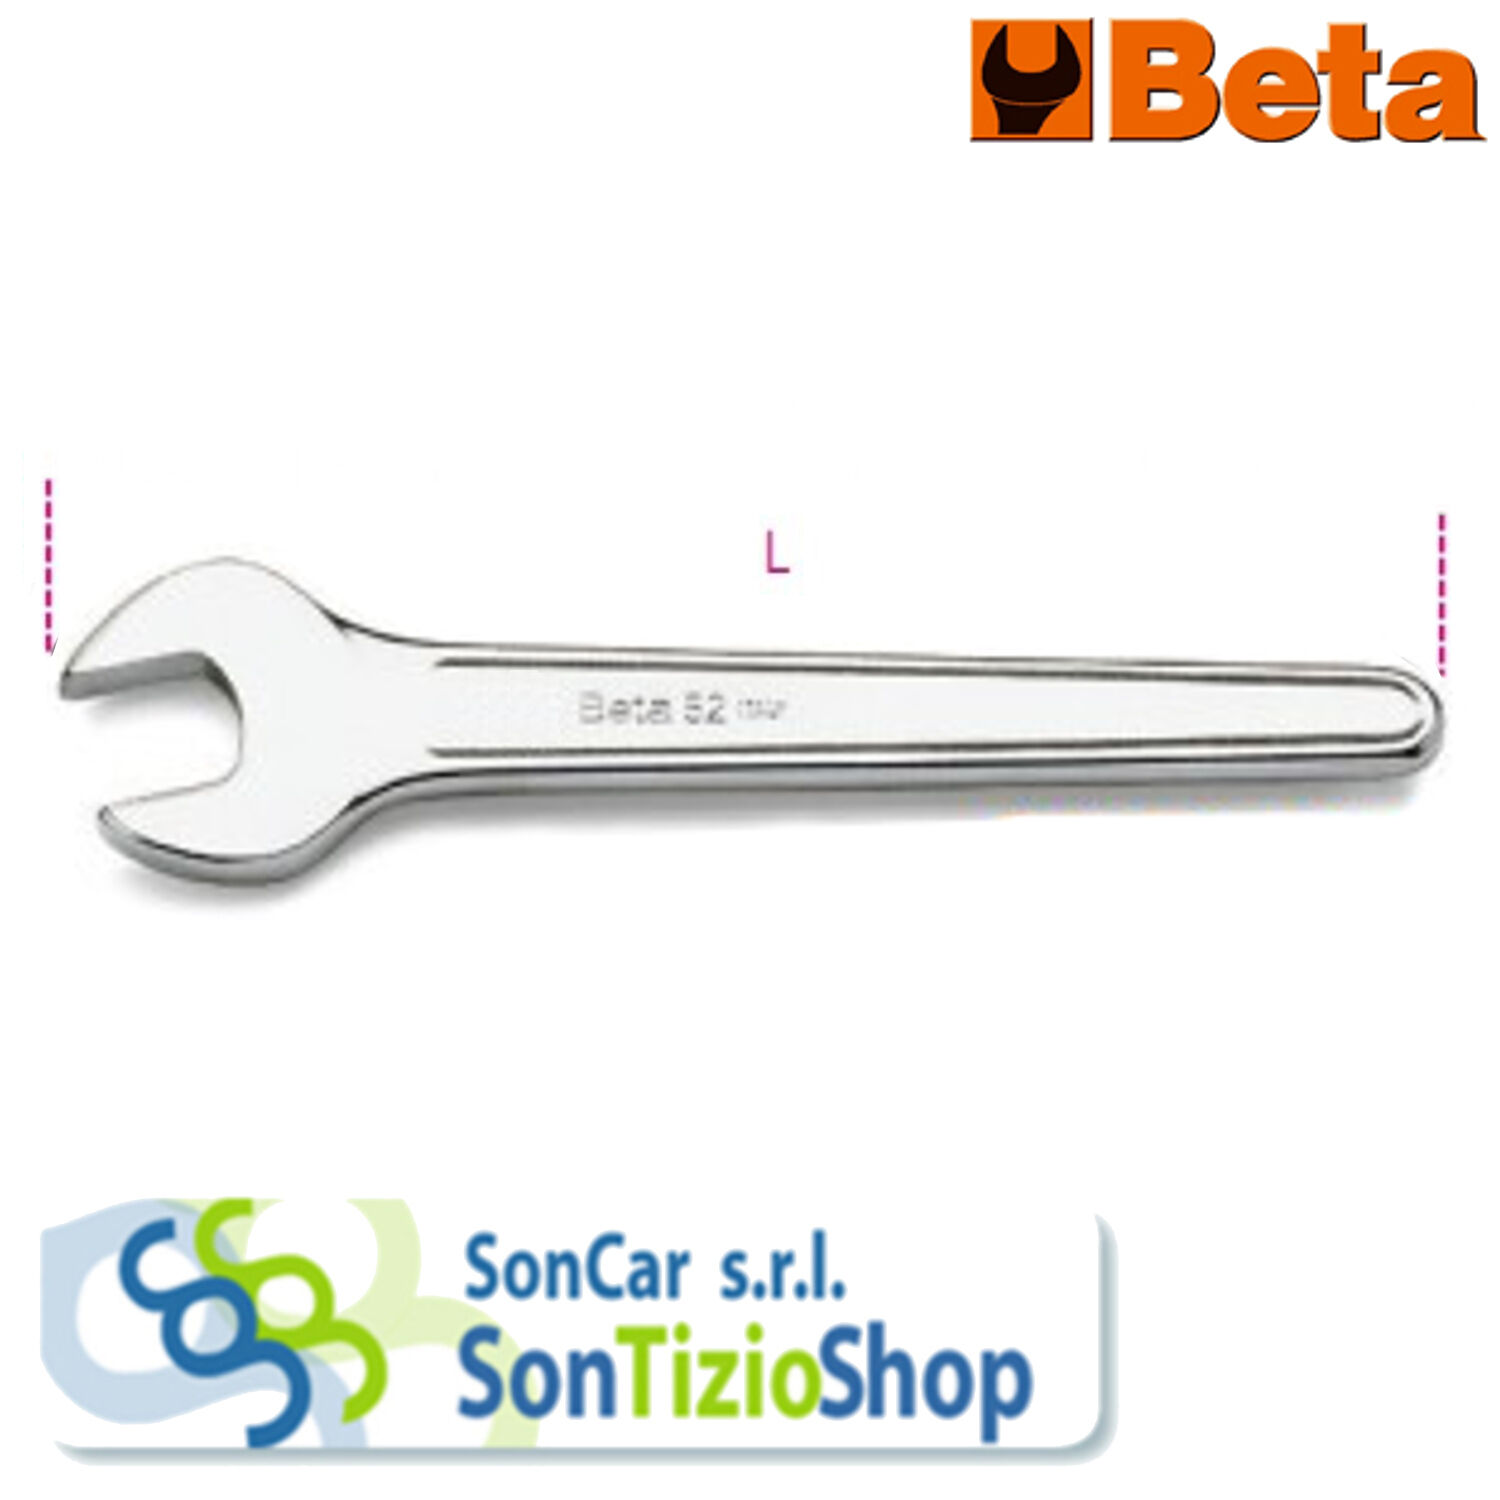 Key open end wrenches Simple mod. 52 ORIGINAL BETA  Enters and choose the Model